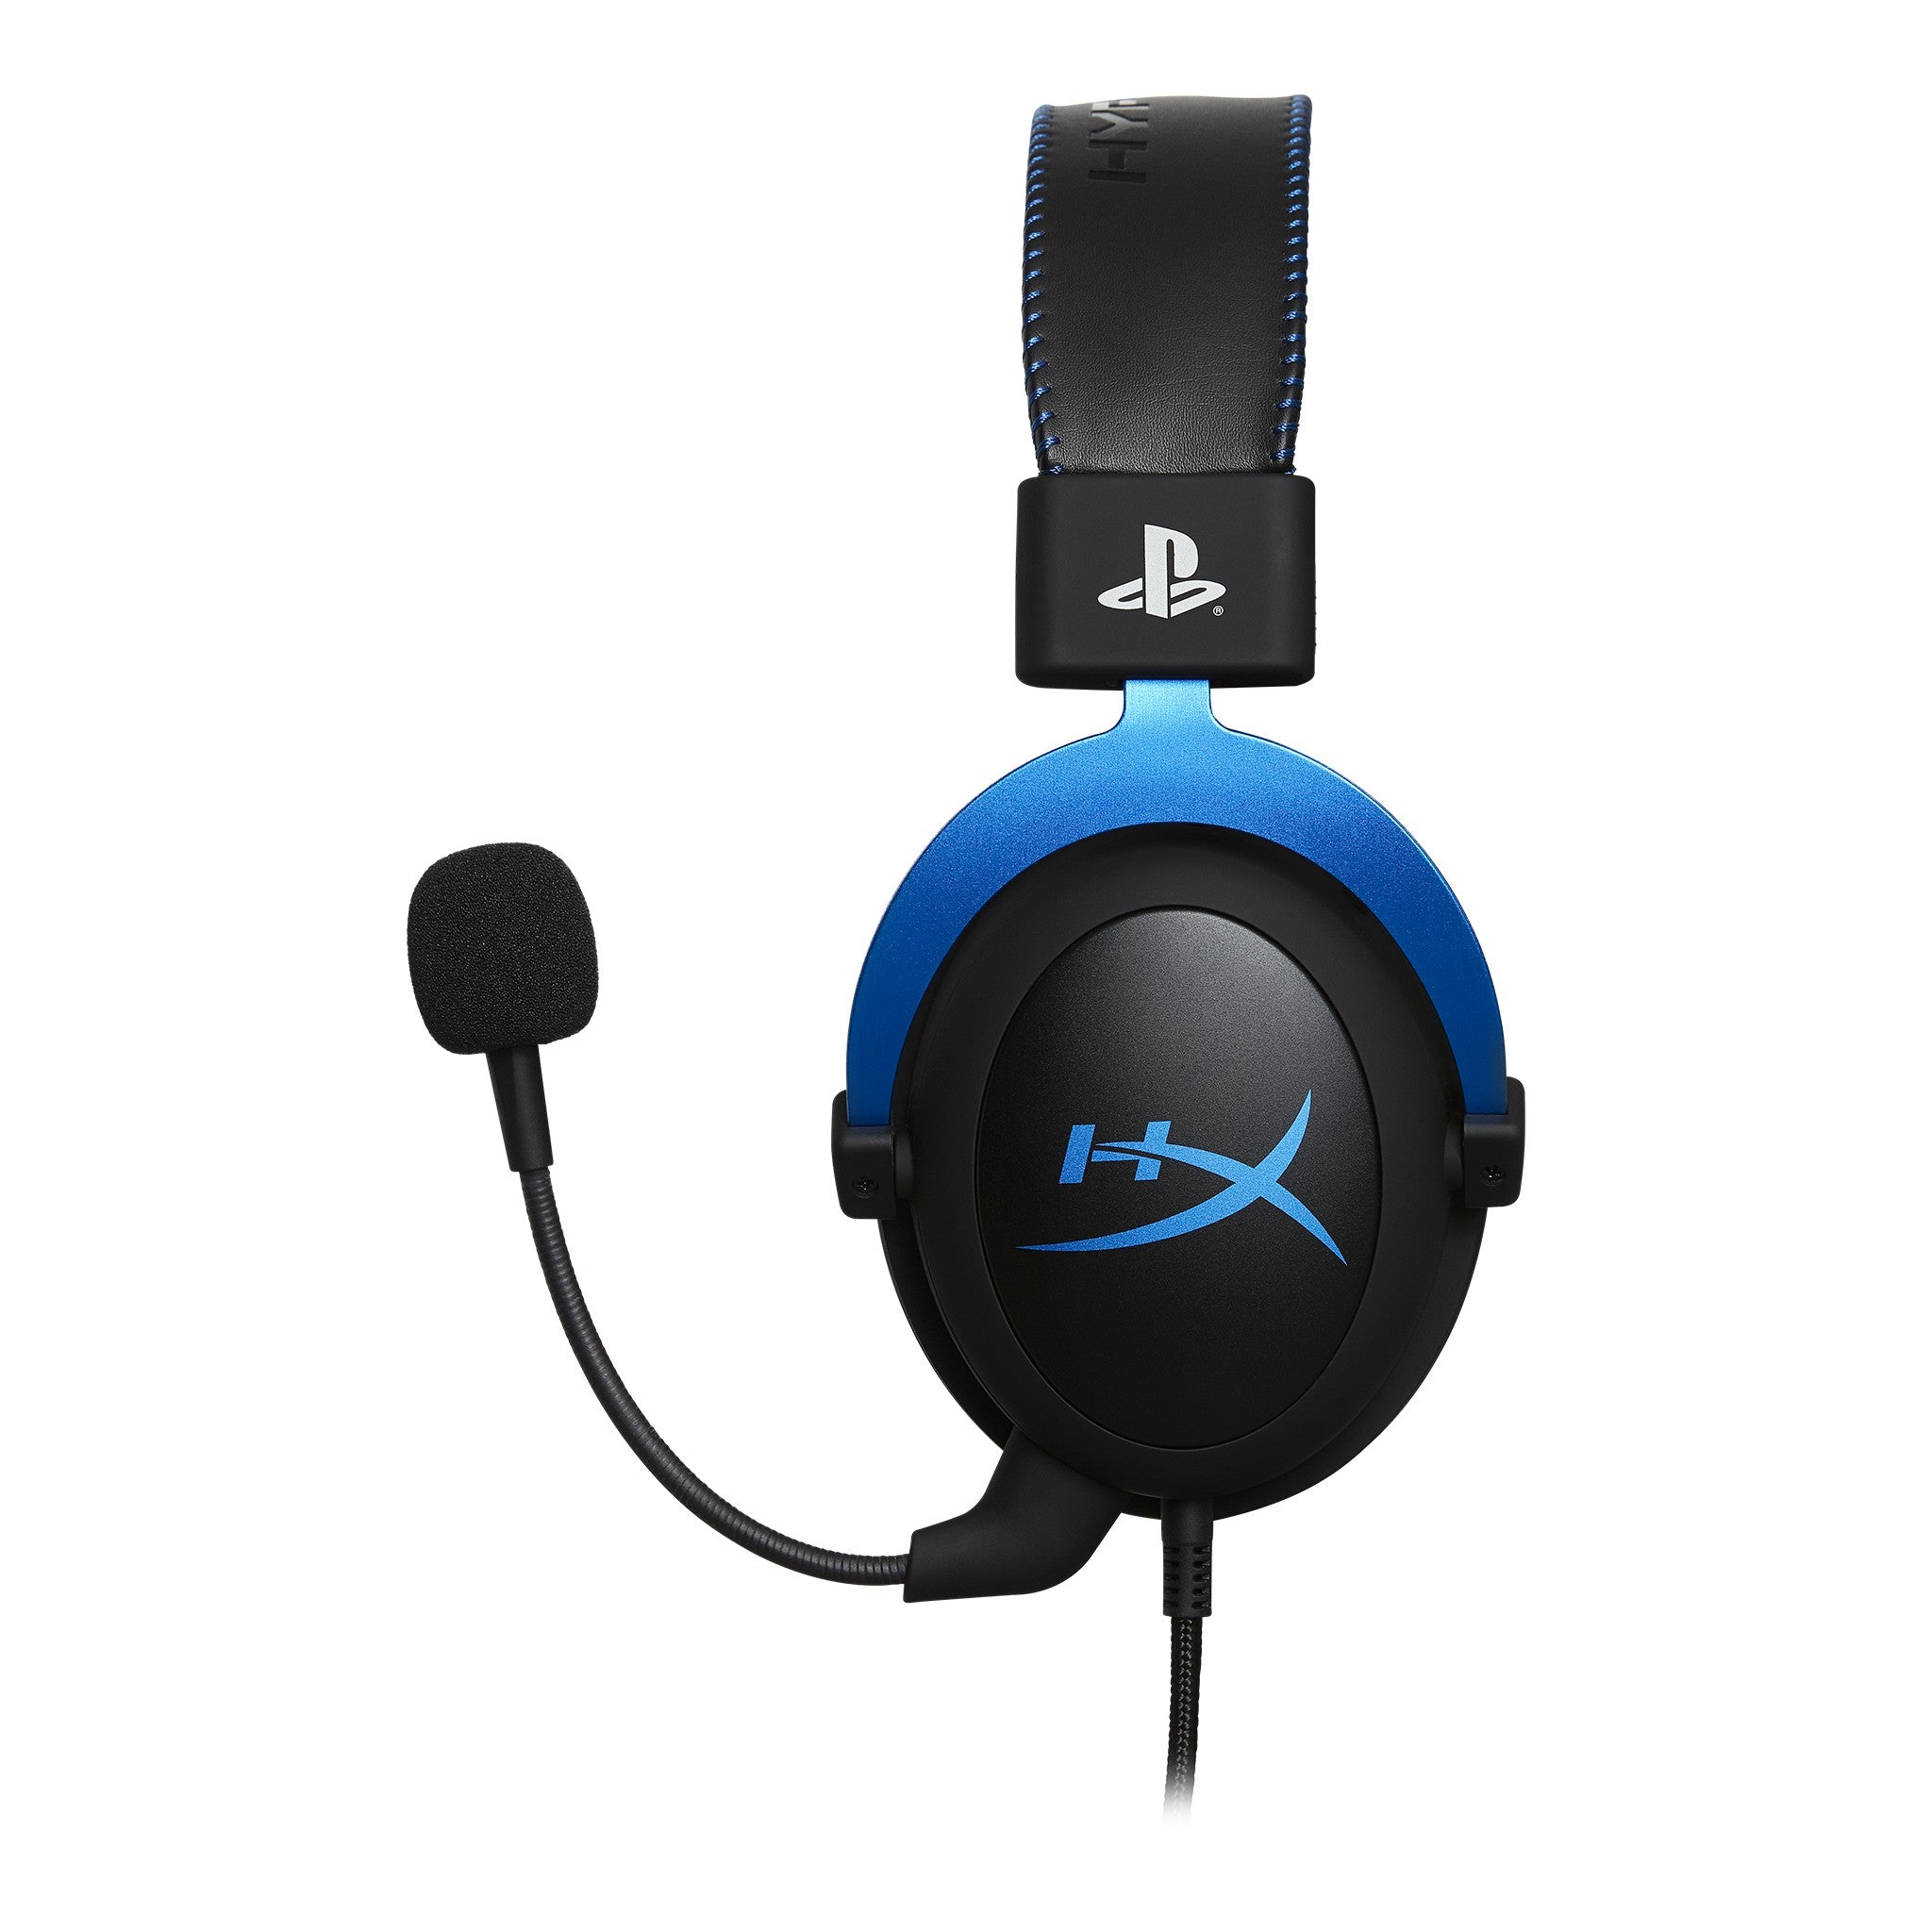 HyperX Cloud Gaming Headset for Sony PlayStation 4